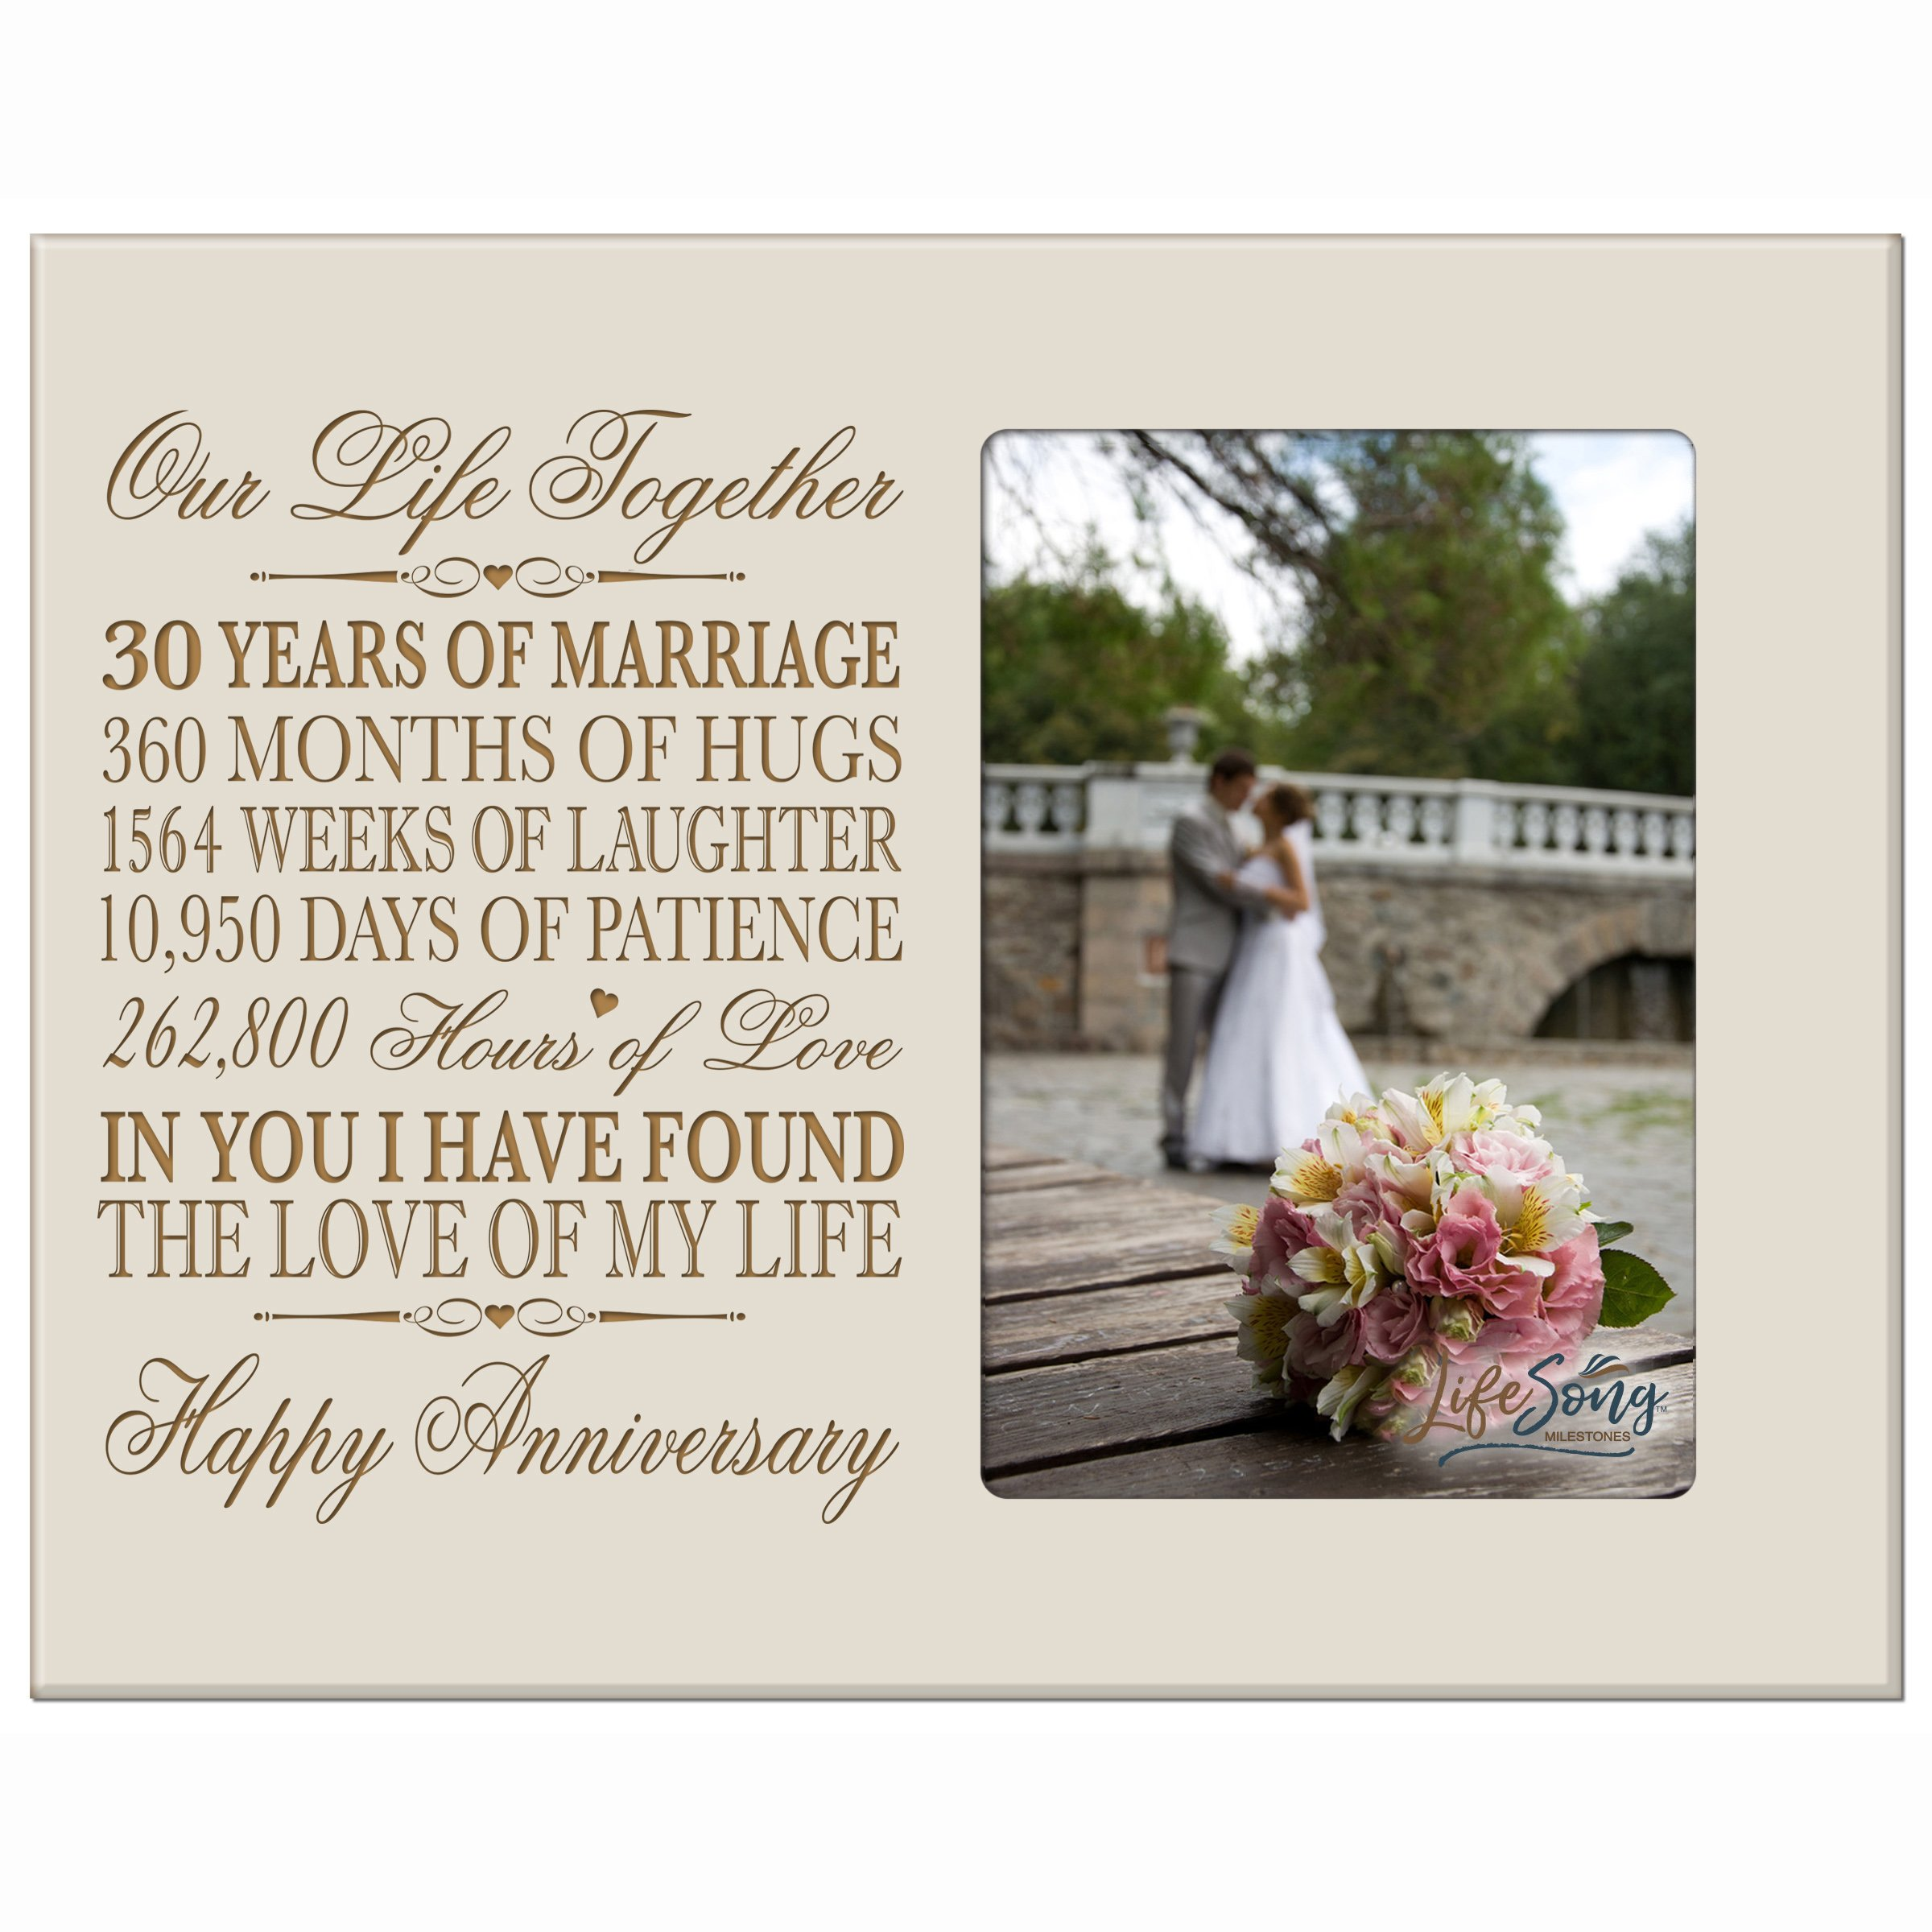 LifeSong Milestones 30 Year Anniversary Picture Frame Gift for her him Couple Custom Engraved 30th Year Wedding Celebration for Husband Wife Photo Frame Holds 1 4x6 Photo 8'' H X 10'' (Ivory)